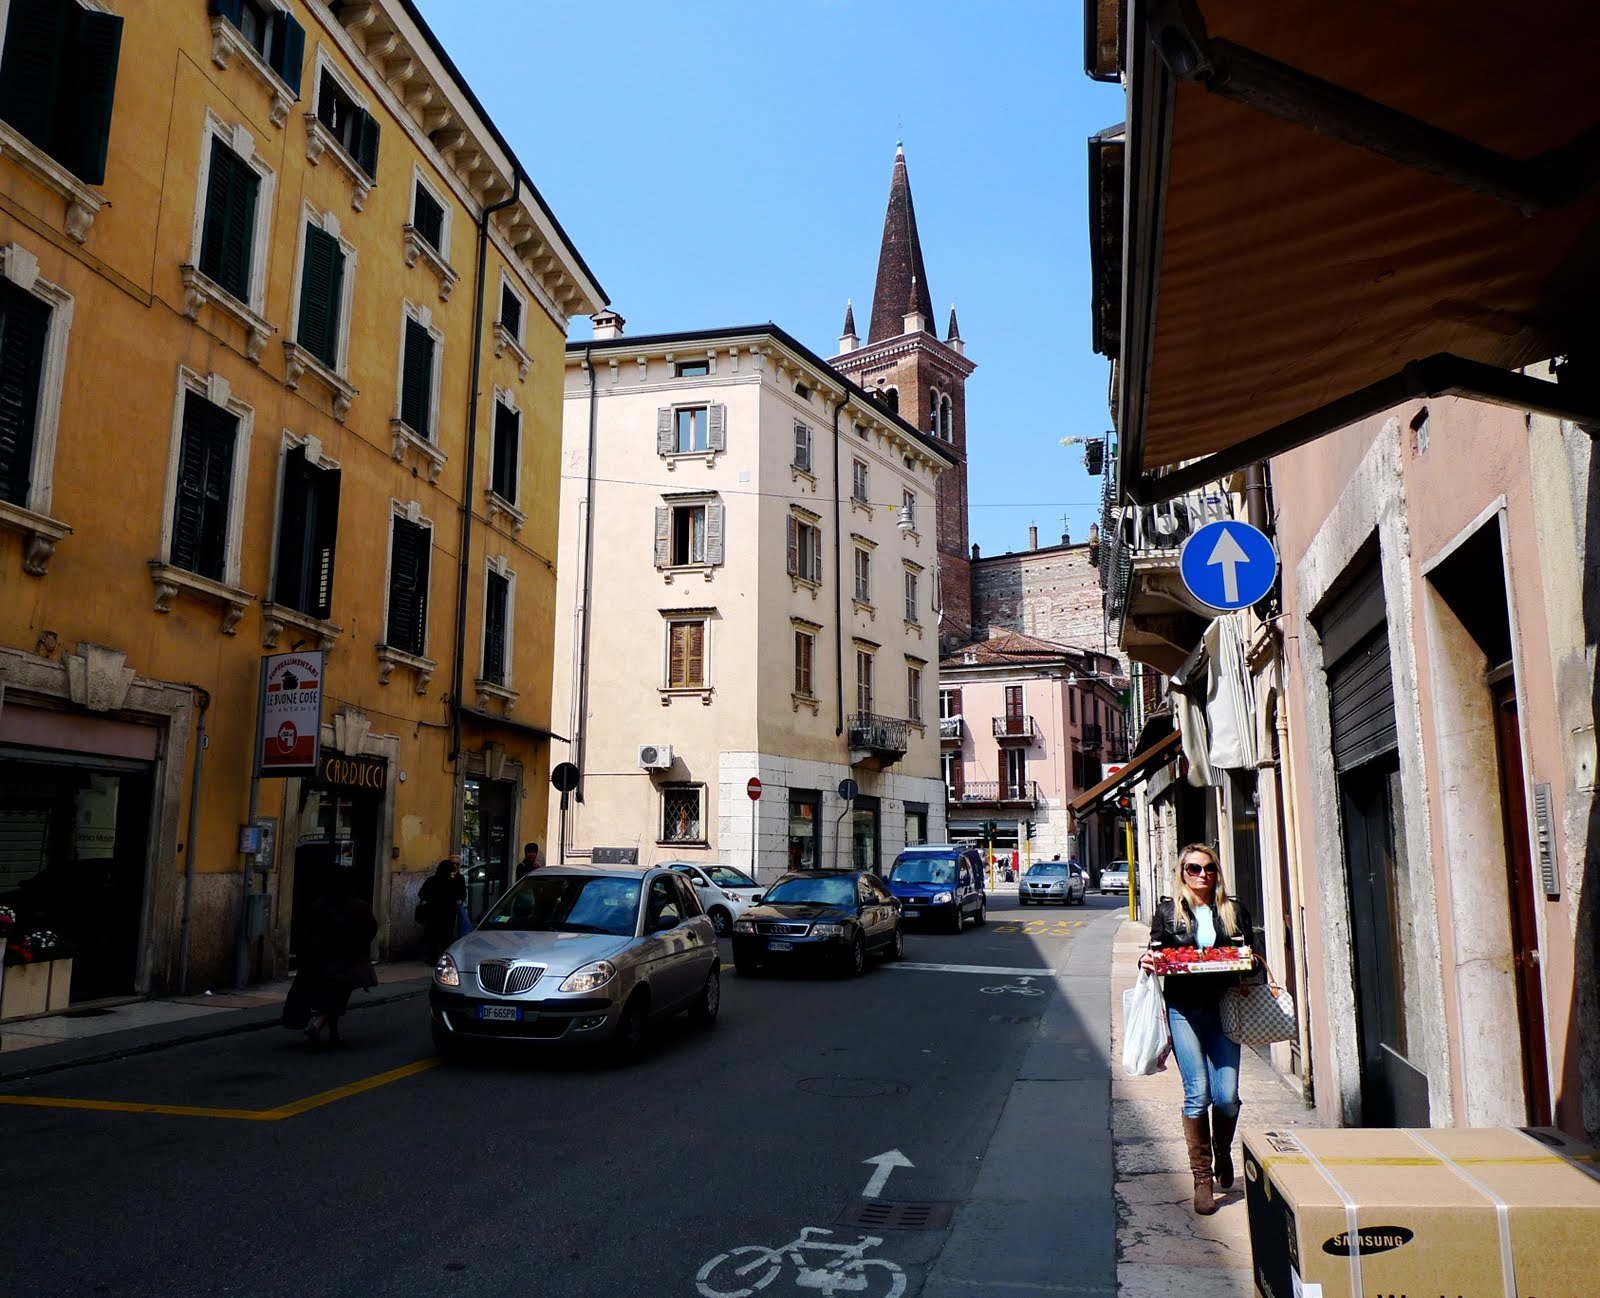 verona daily Italian newspapers for information on local issues, politics, events, celebrations, people and business looking for accommodation, shopping, bargains and weather.